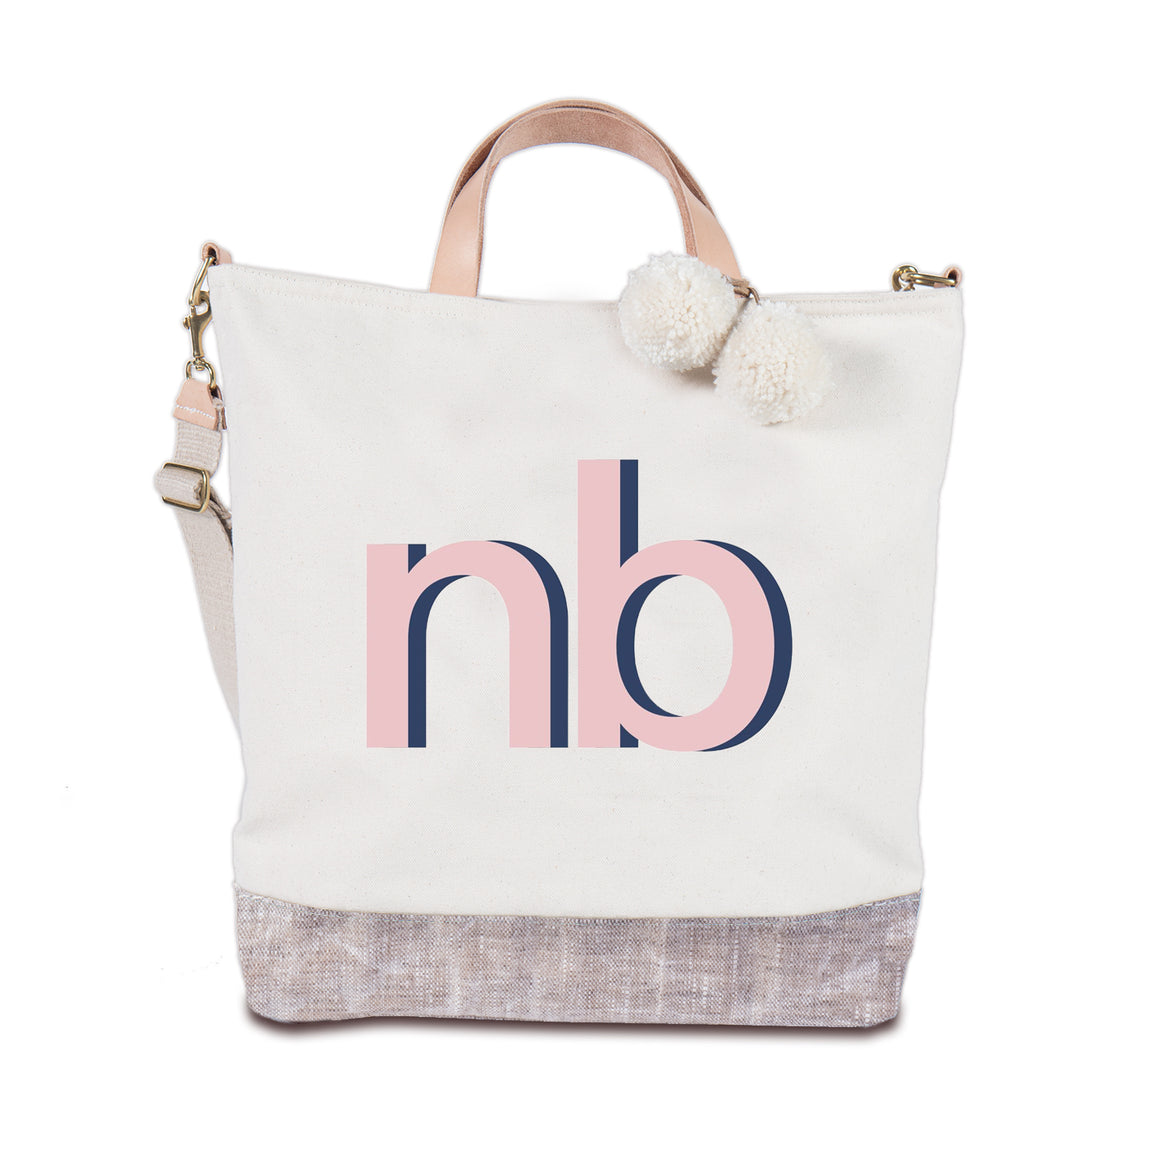 ben day tote | harrison font